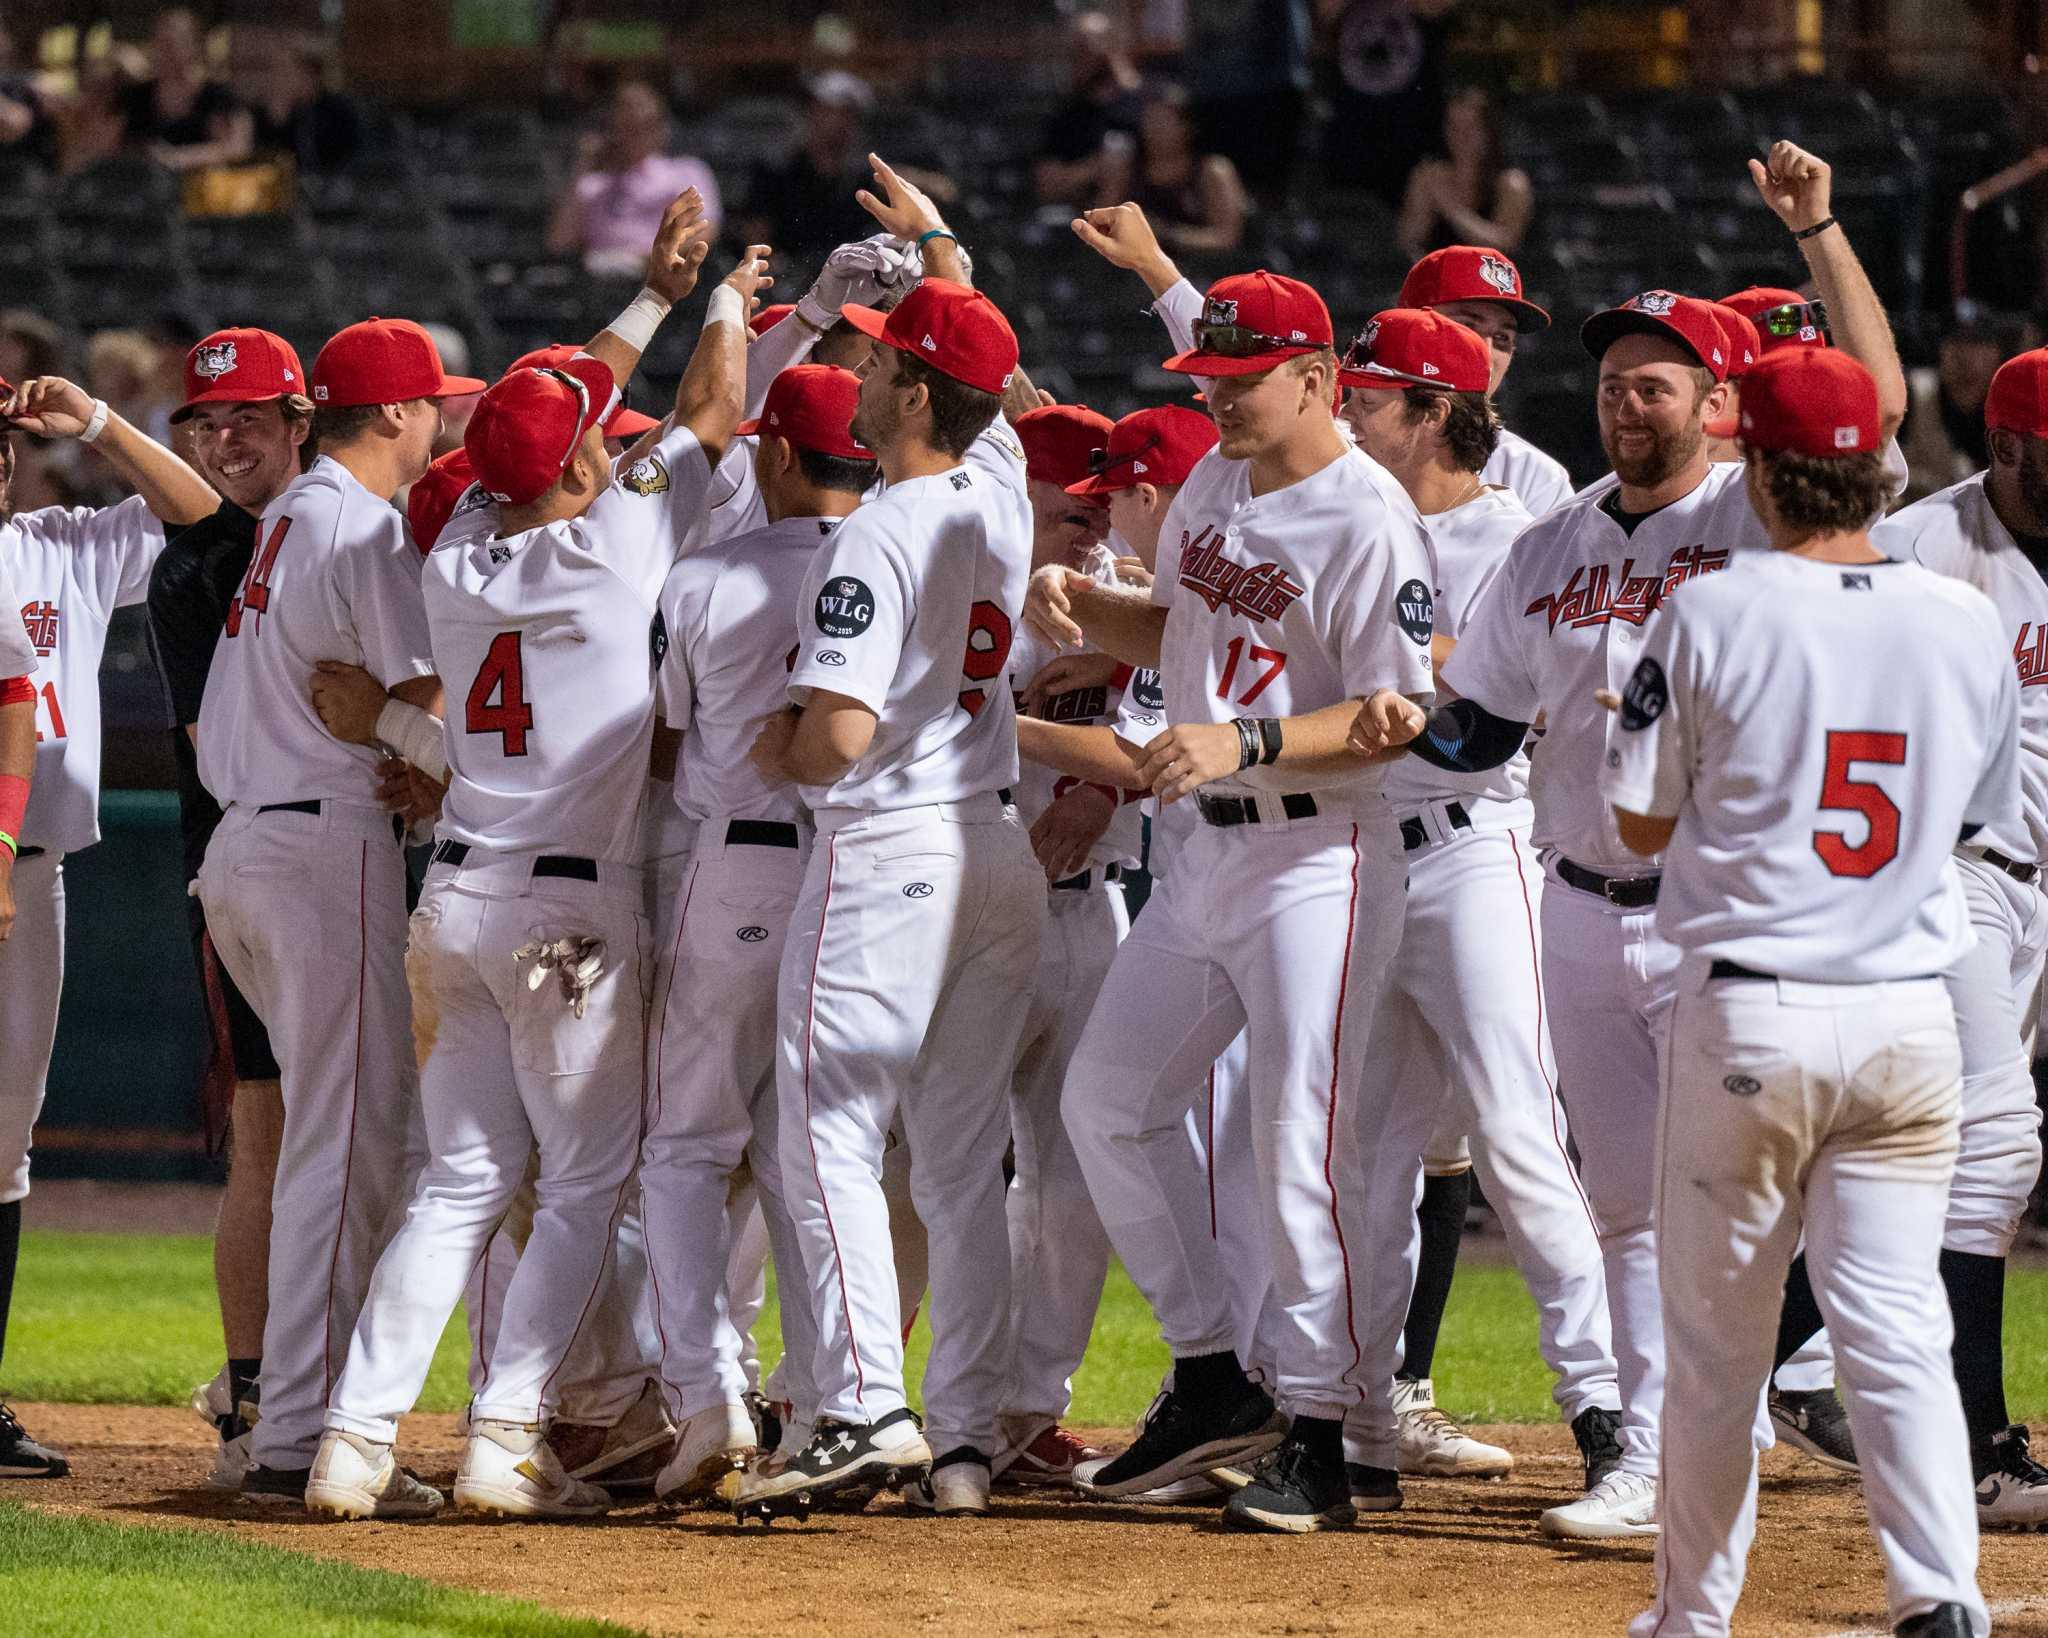 ValleyCats win home run derby to complete doubleheader sweep